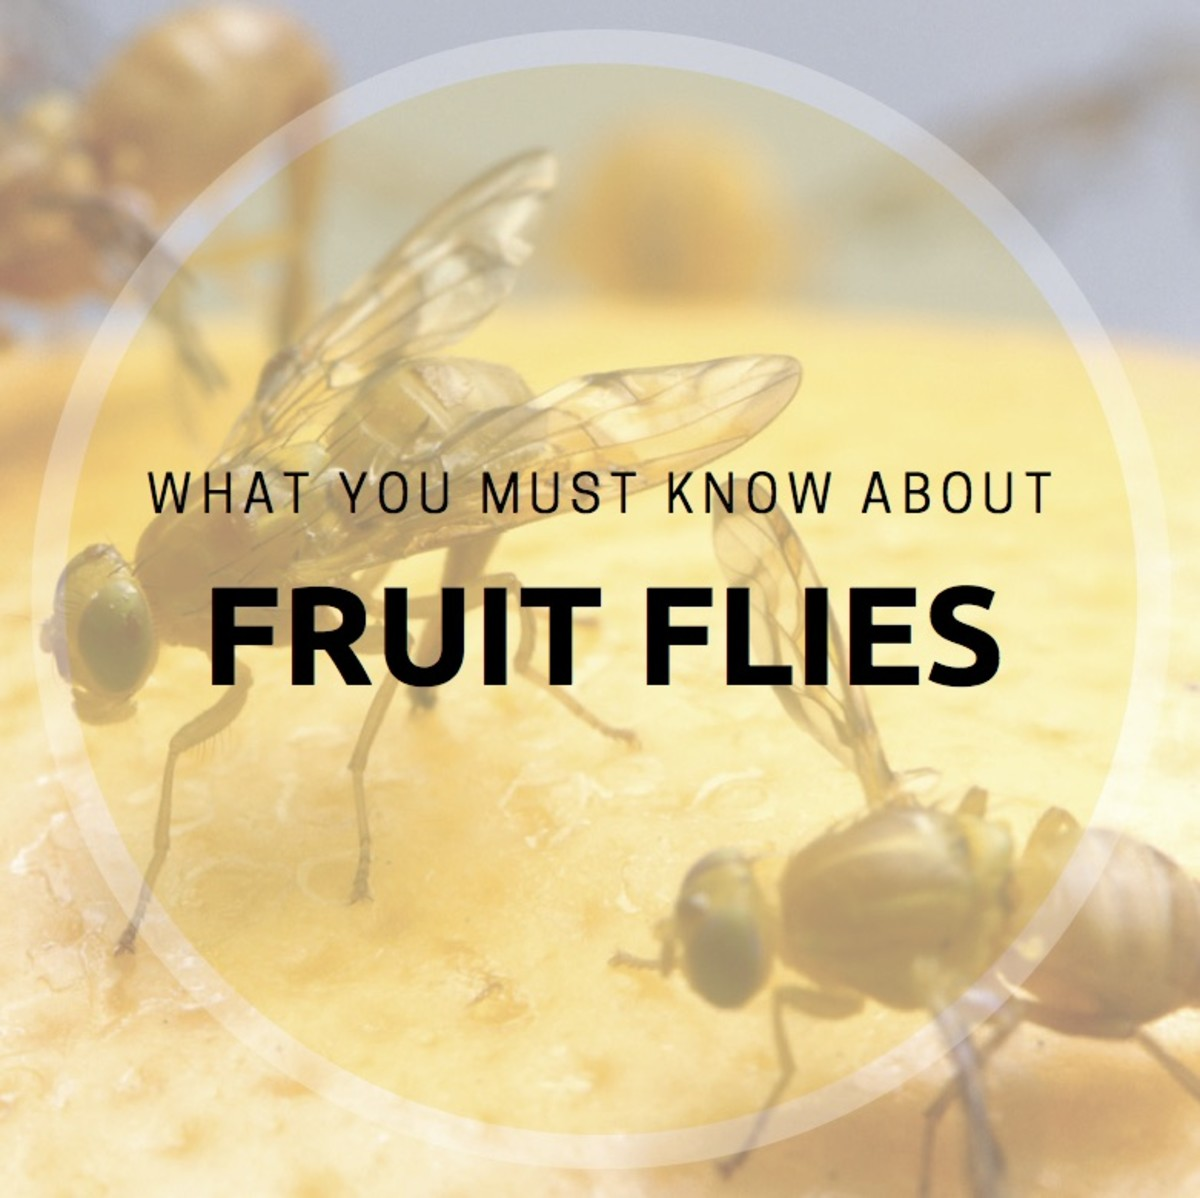 What You Must Know About Fruit Flies